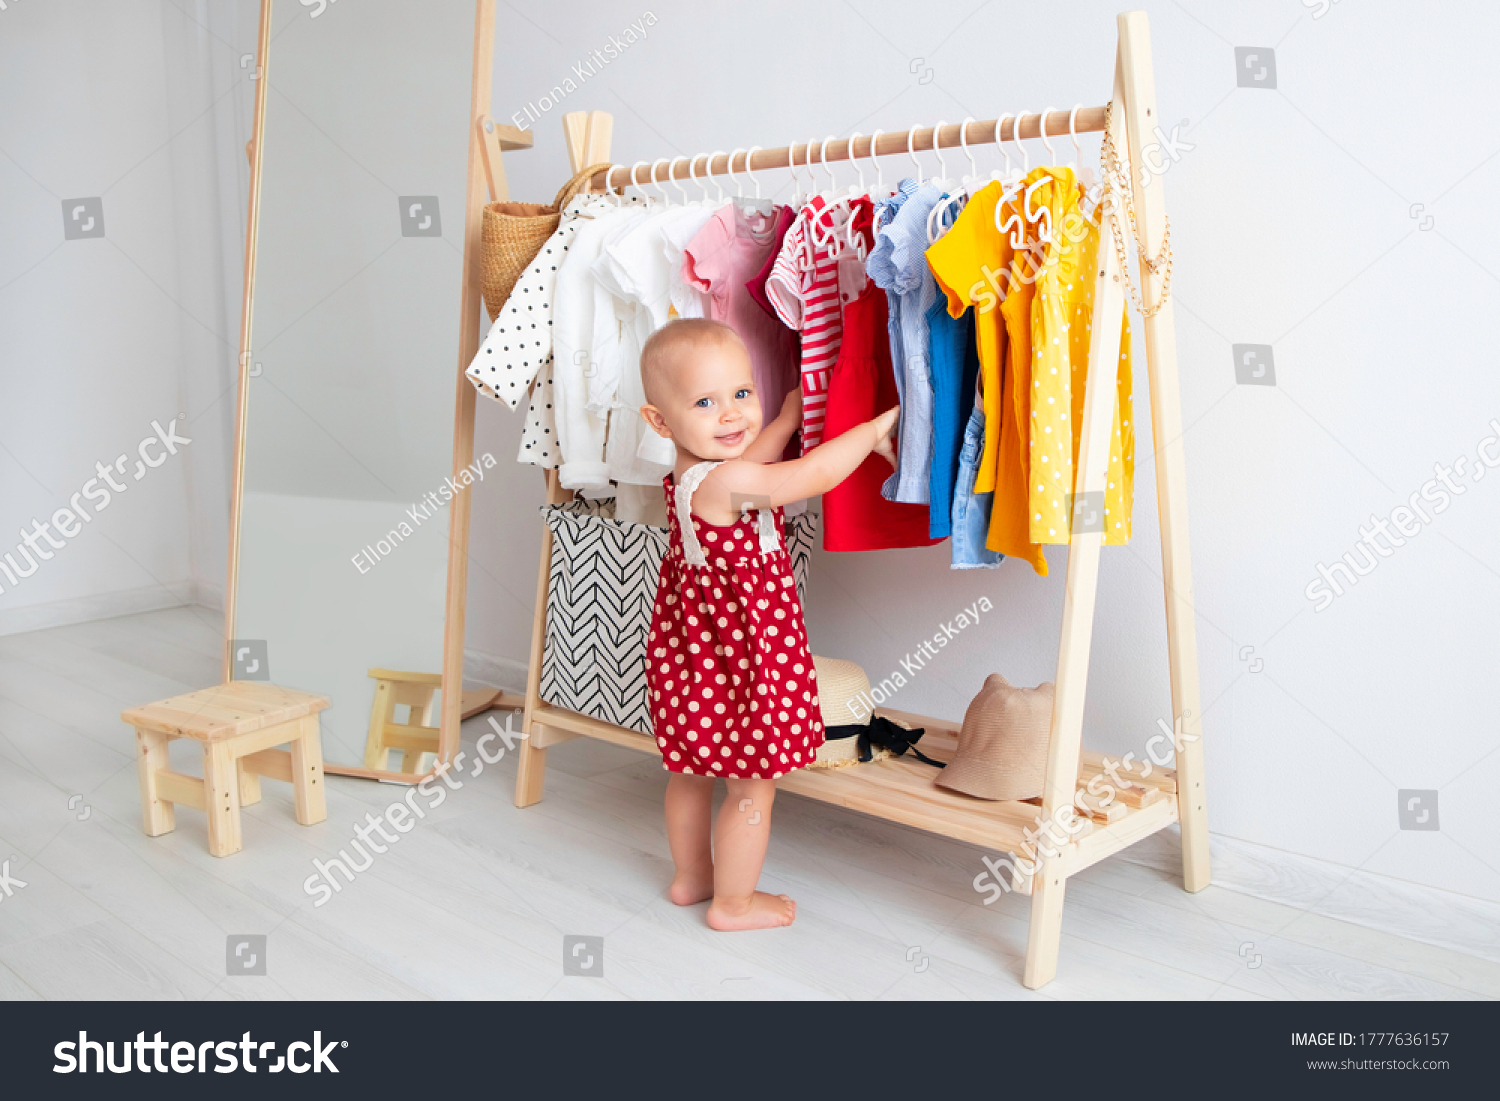 Baby girl stands near a wardrobe and chooses a dress and smiles. Dressing closet with clothes arranged on hangers. Wardrobe of newborn, kids, toddlers, babies full of all clothes. montessori wardrobe. #1777636157